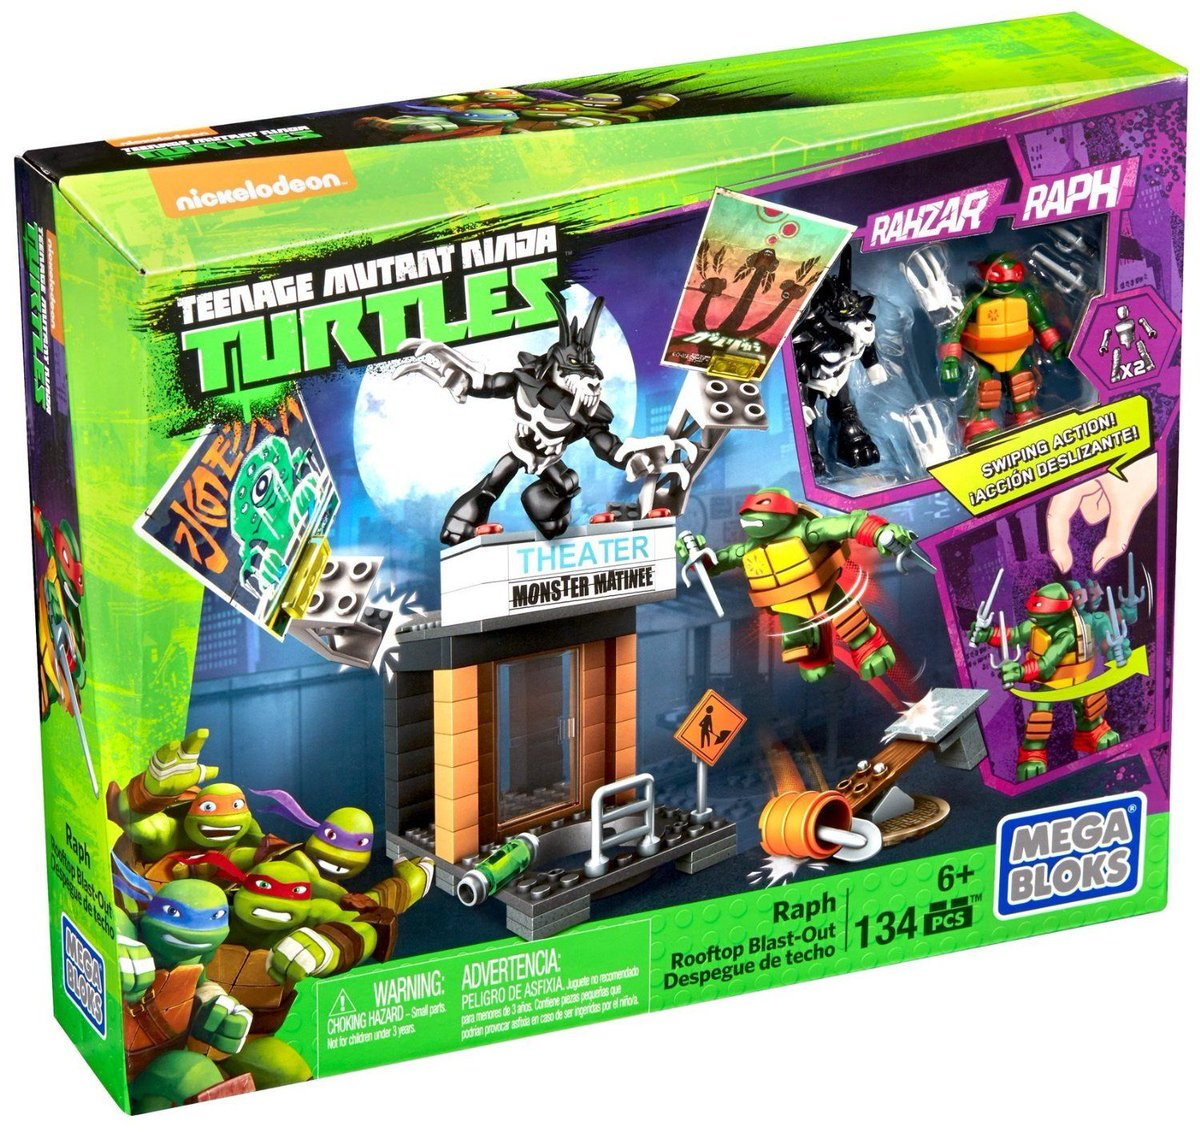 TMNT Fan 86 on Twitter Mega Bloks  Teenage Mutant Ninja Turtles